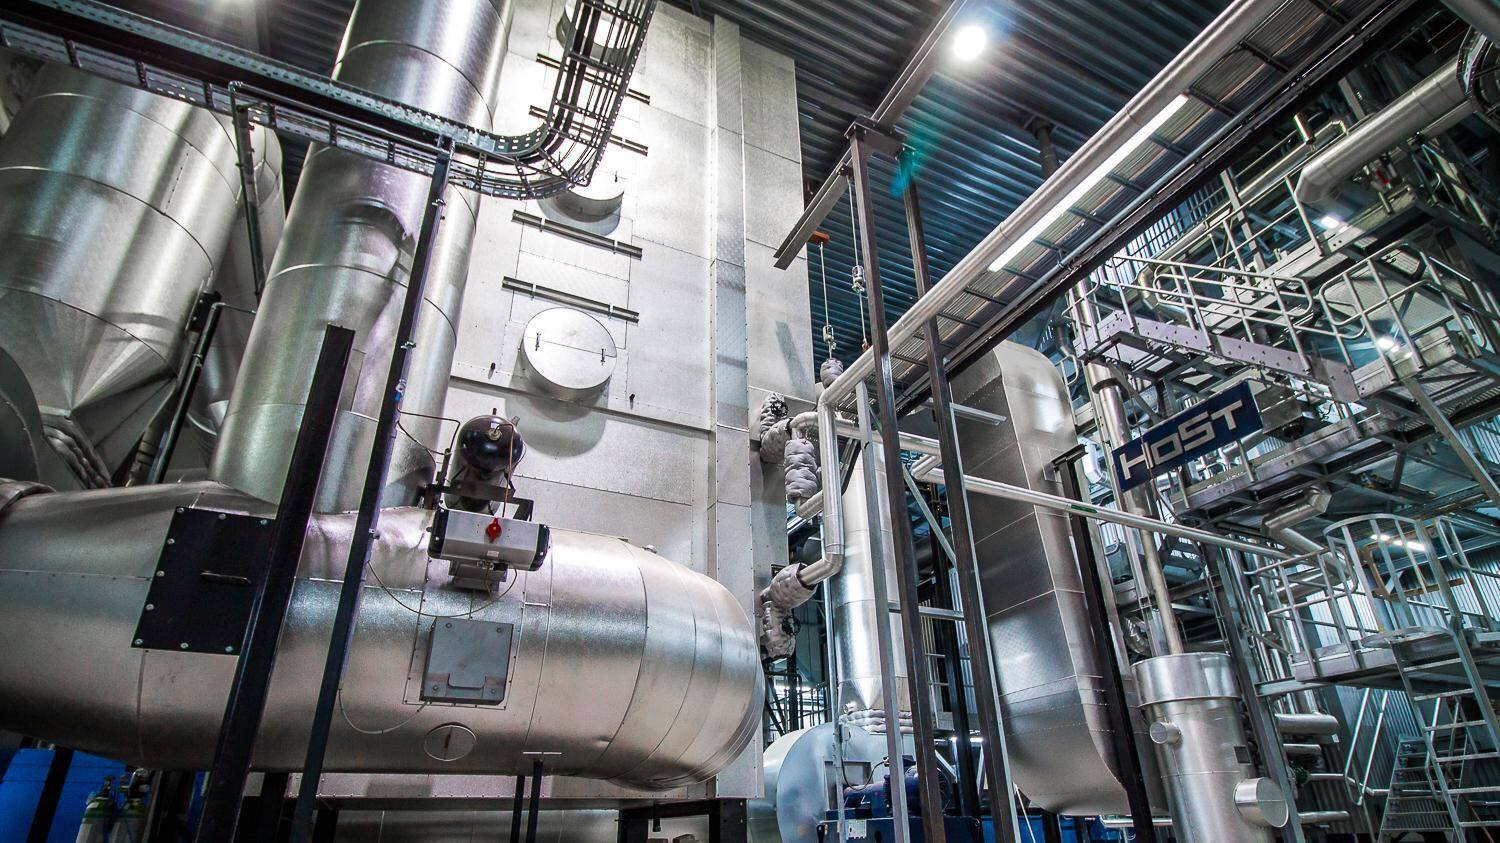 Gallery image 0 - Biomass- and waste-fired combined heat and power plants from 1 MWt to 50 MWt boiler capacity and up to 12 MWe for the production of renewable steam, hot water and electricity.